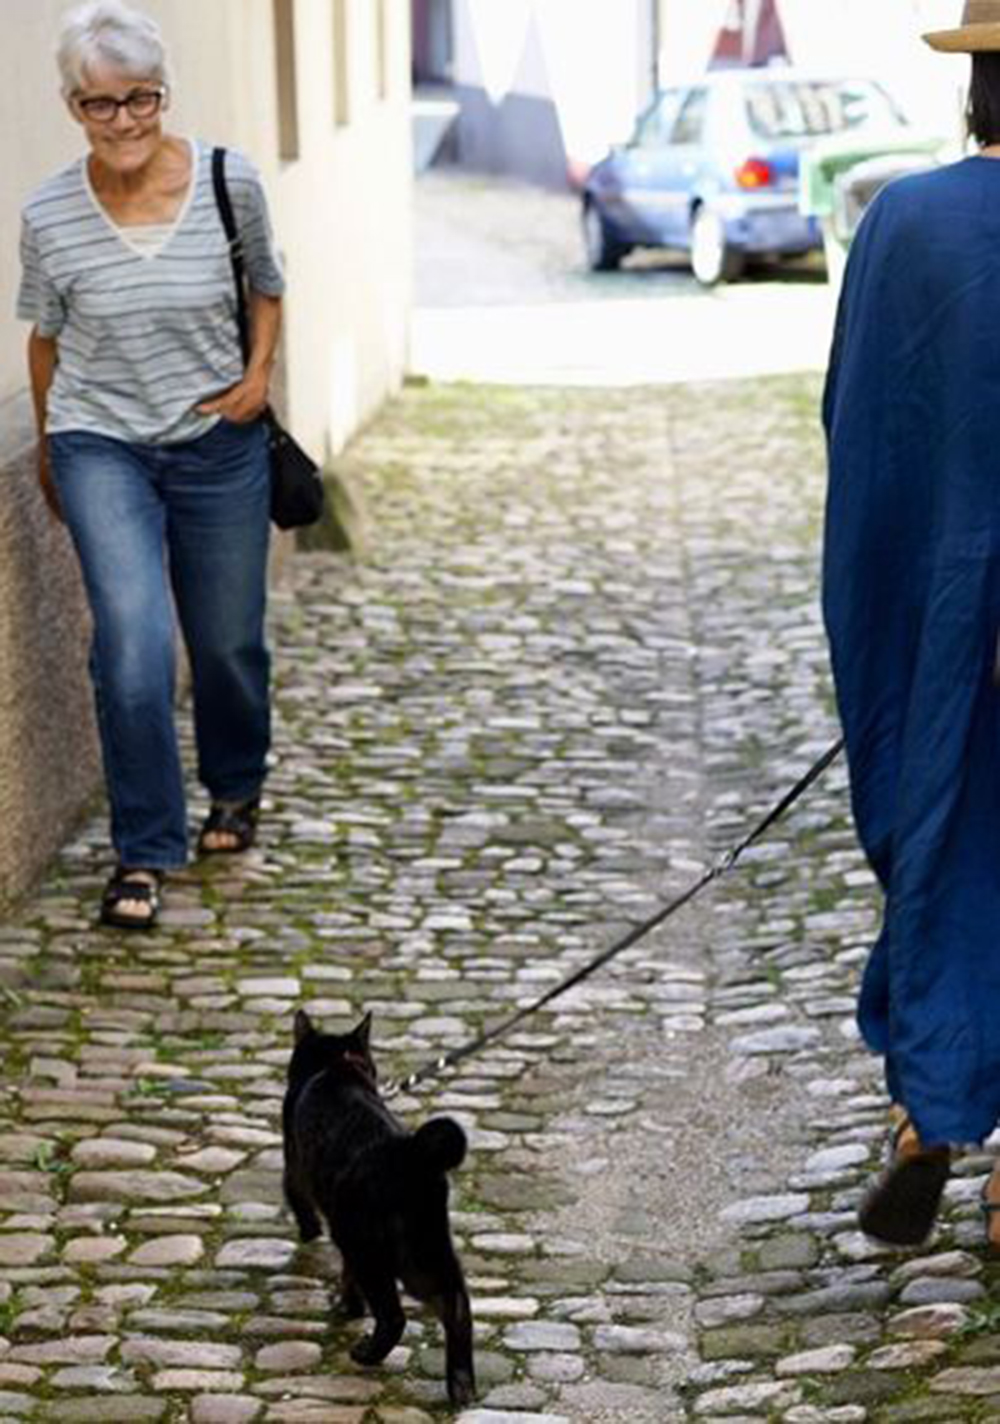 noro is walking together with the owner